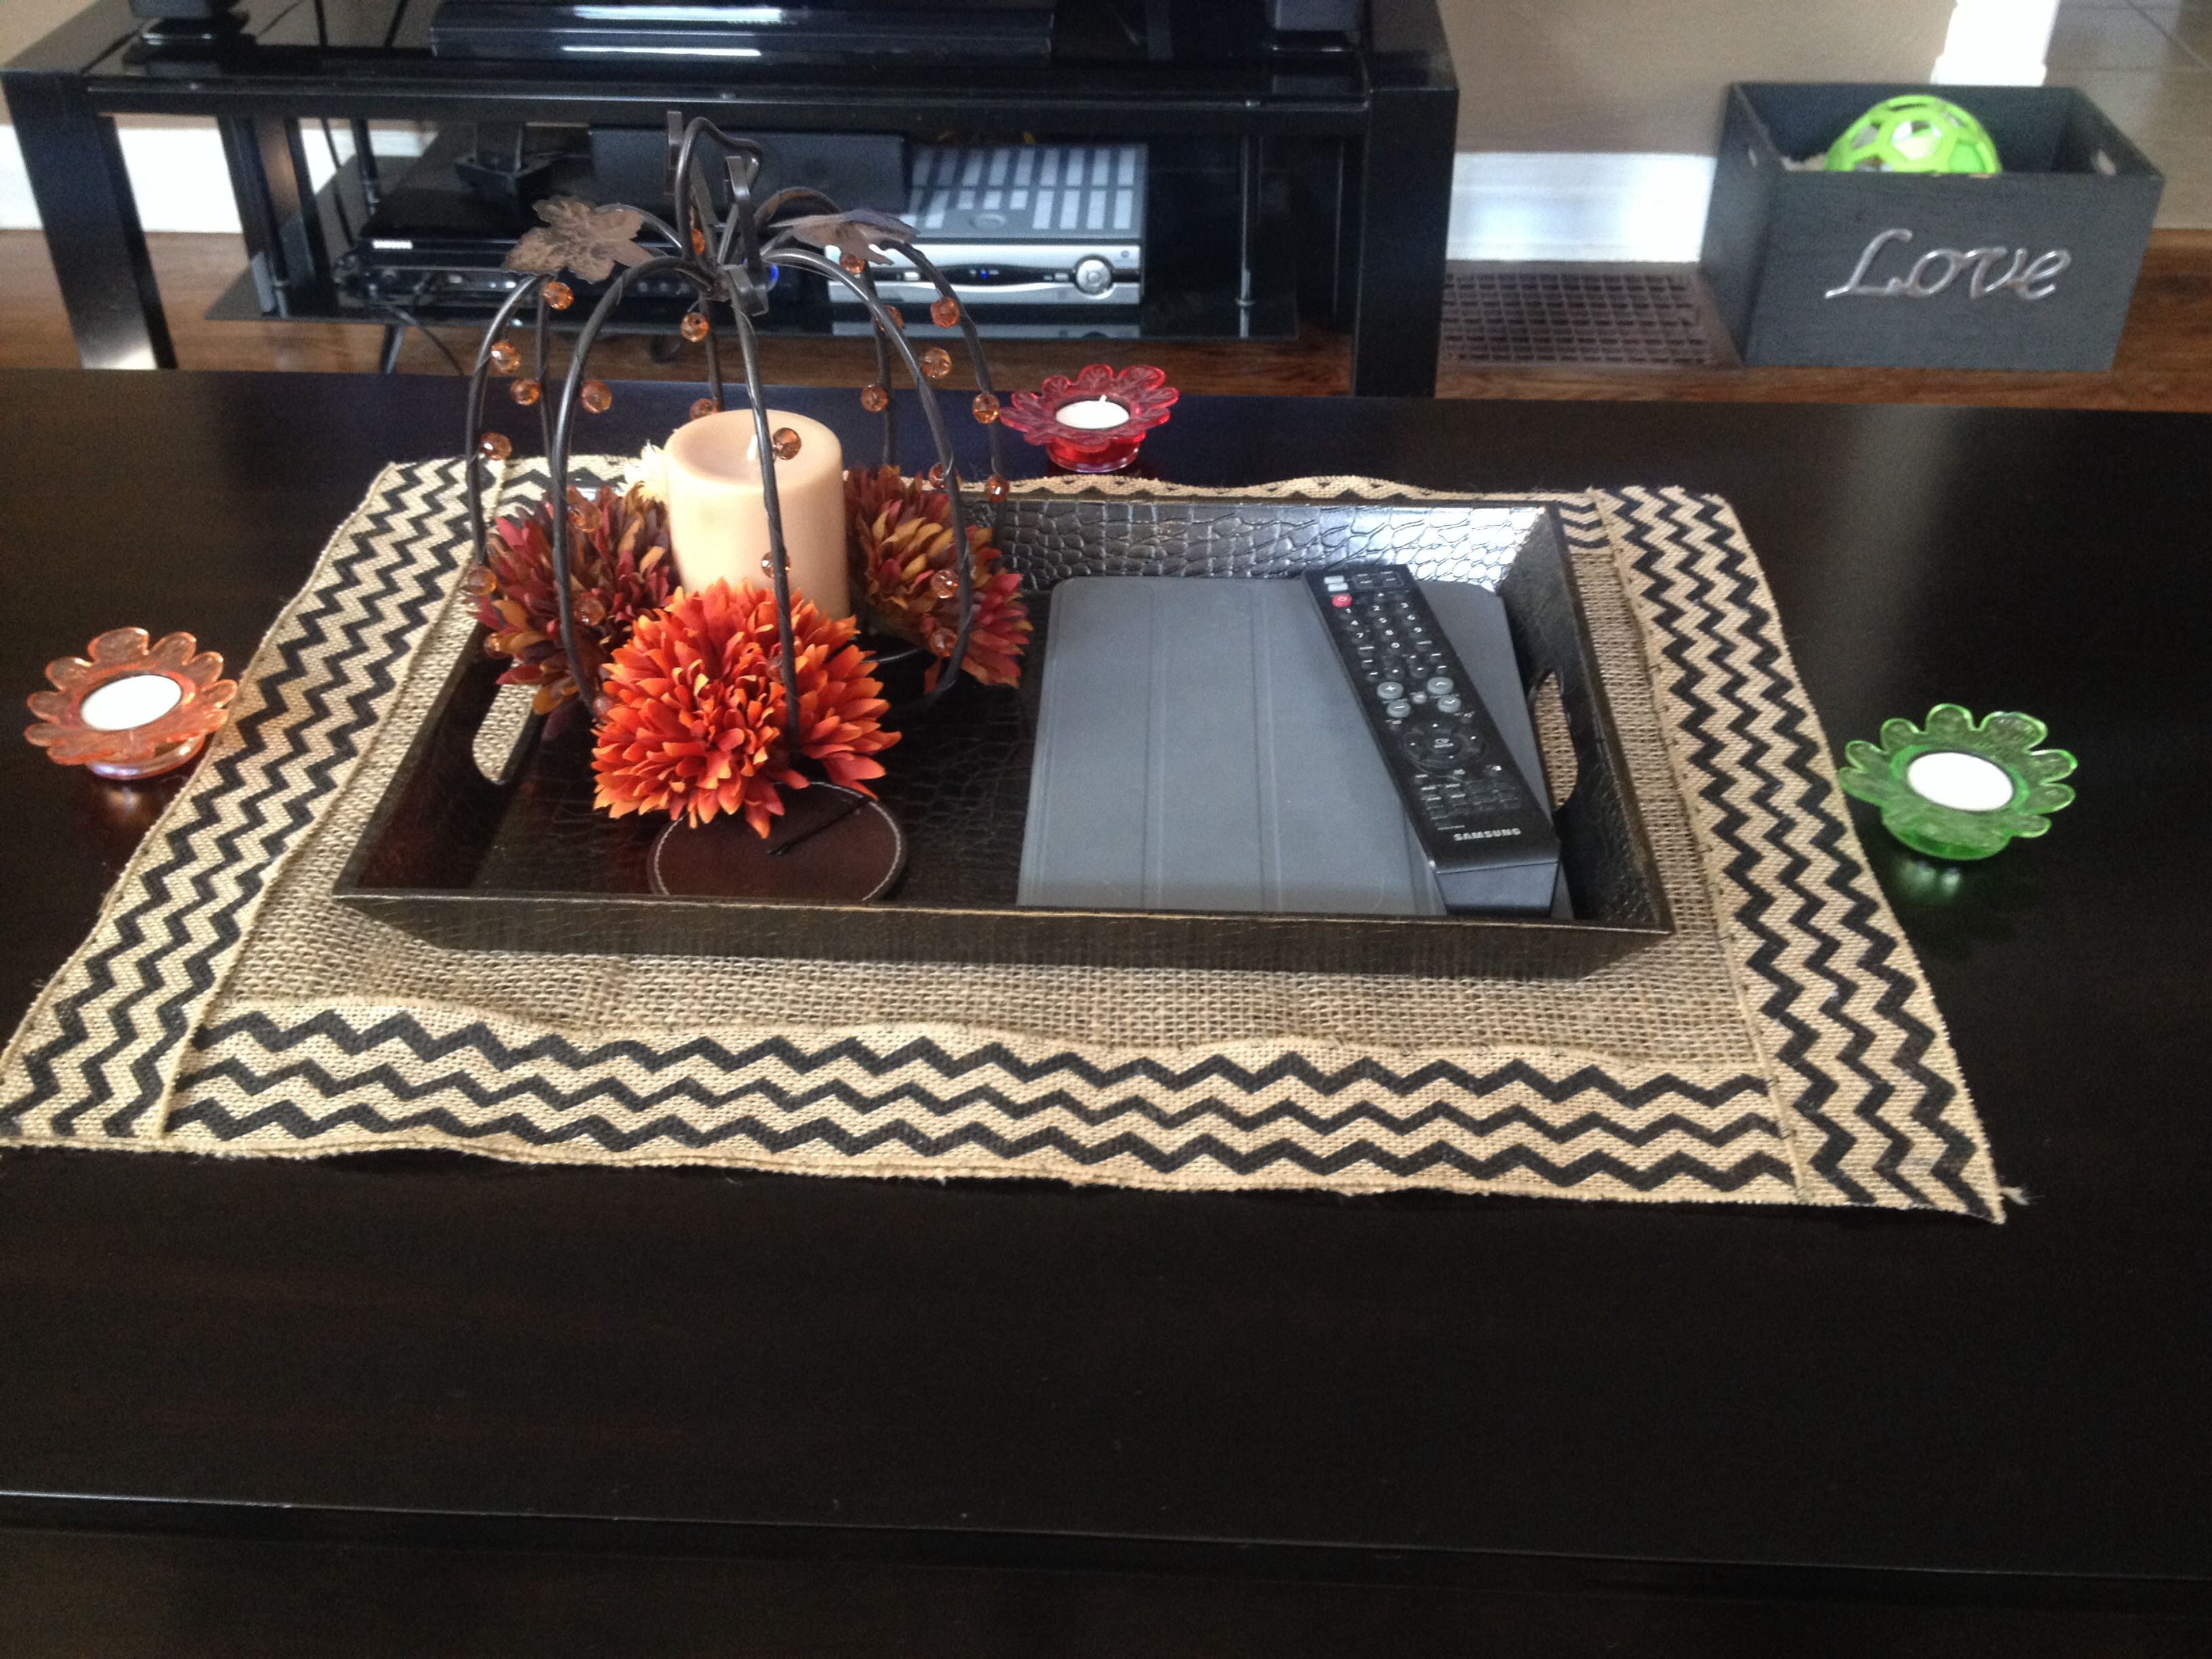 Burlap Coffee Table Runner Use Pul Fabric Underneath To Protect The Counter In My